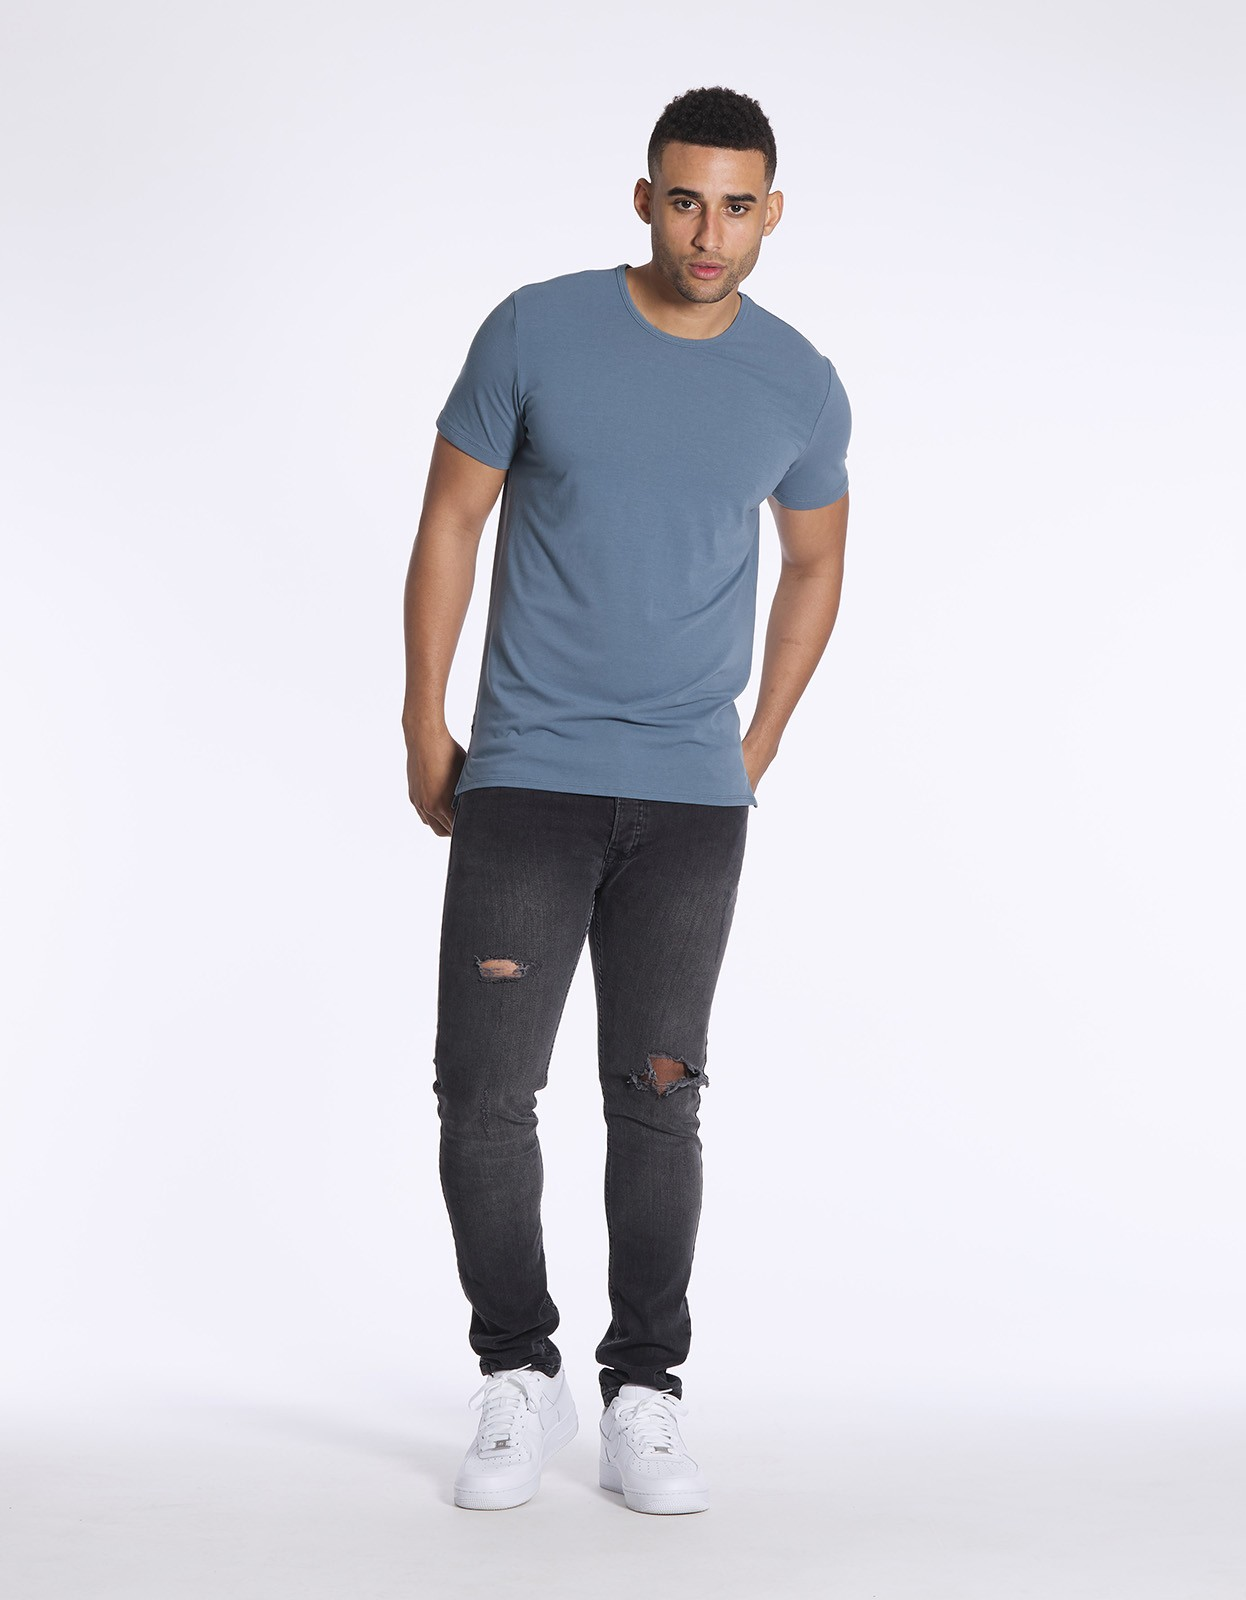 Best-Los-Angeles-Clothing-Product-Photography-Studio